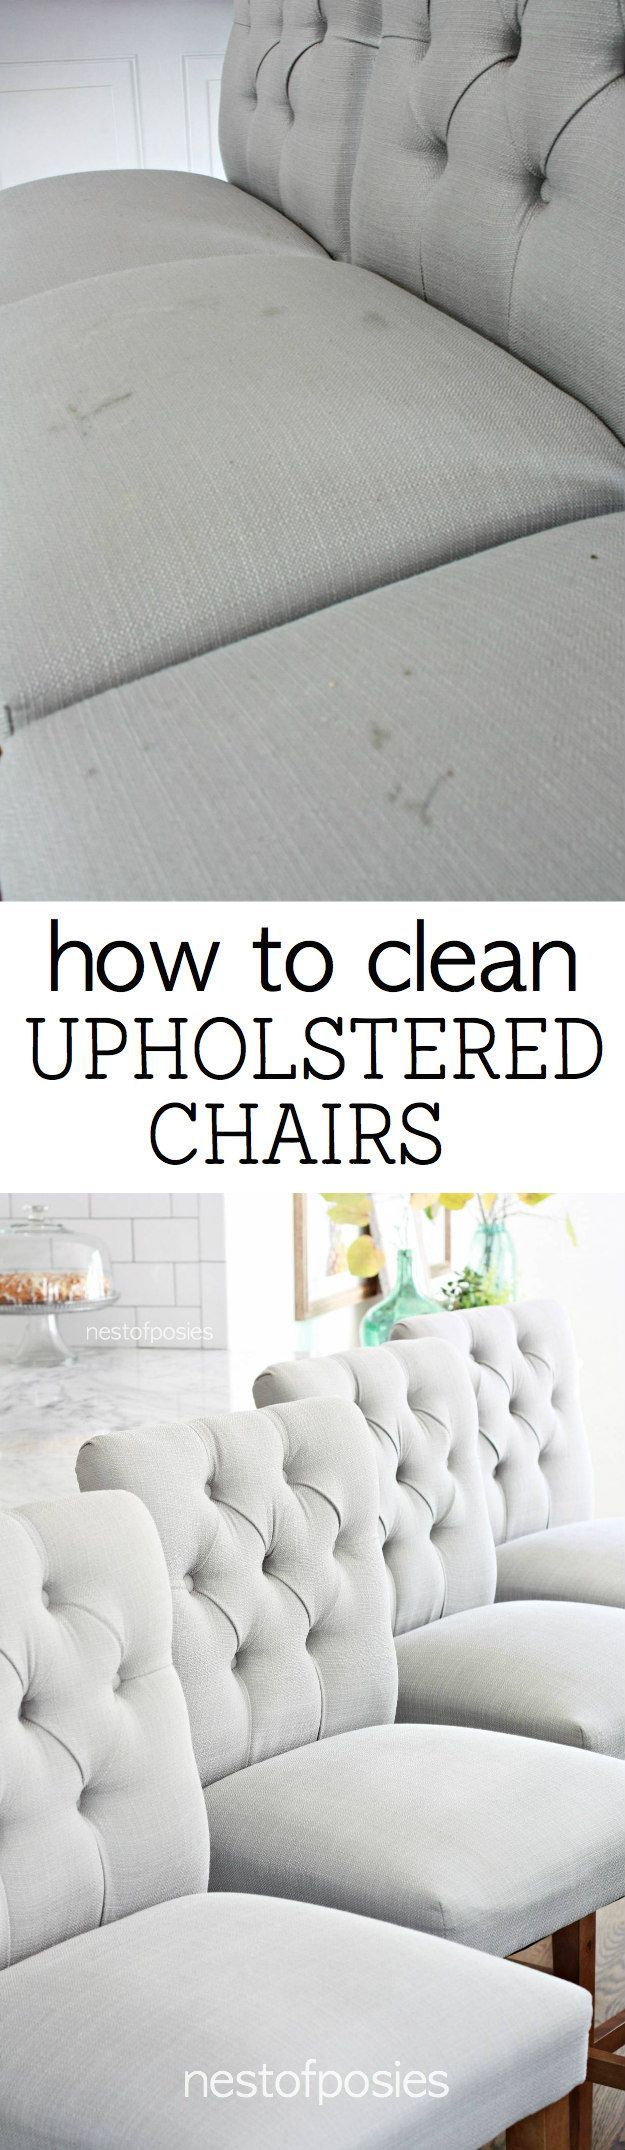 Exceptionnel How To Clean Upholstered Chairs From Food And Grease Stains. Having 3 Young  Kids, I Have Learned The Simplest Trick In Keeping These Clean!